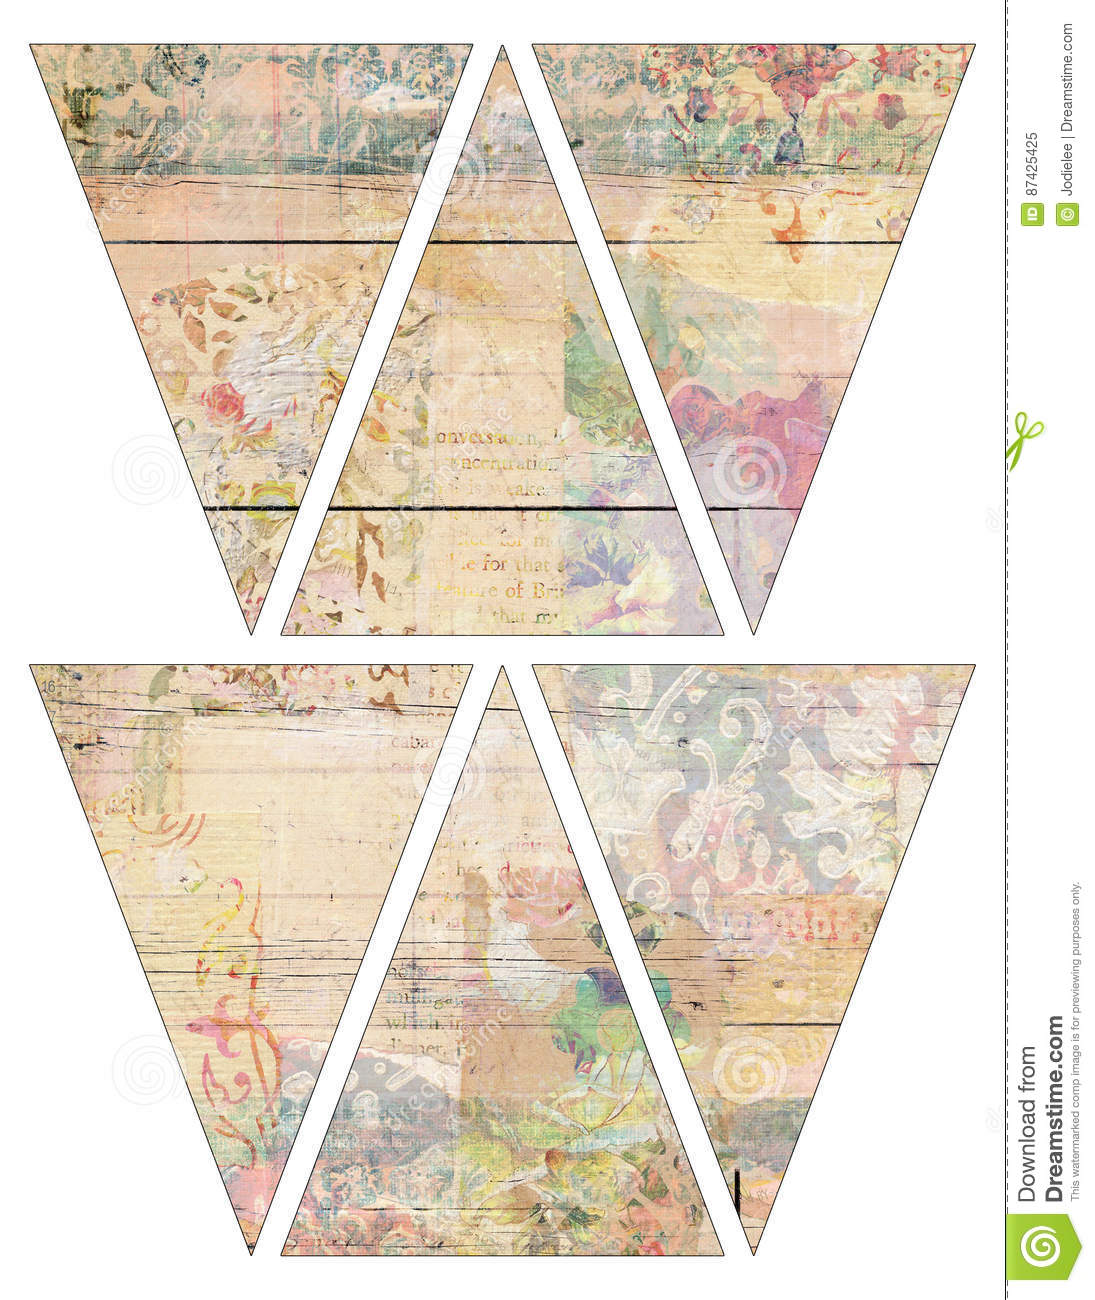 Diy Printable Vintage Style Banner Bunting Garland Flags With Collaged Vintage Wallpaper And Wood Background Stock Illustration Illustration Of Christmas Flags 87425425